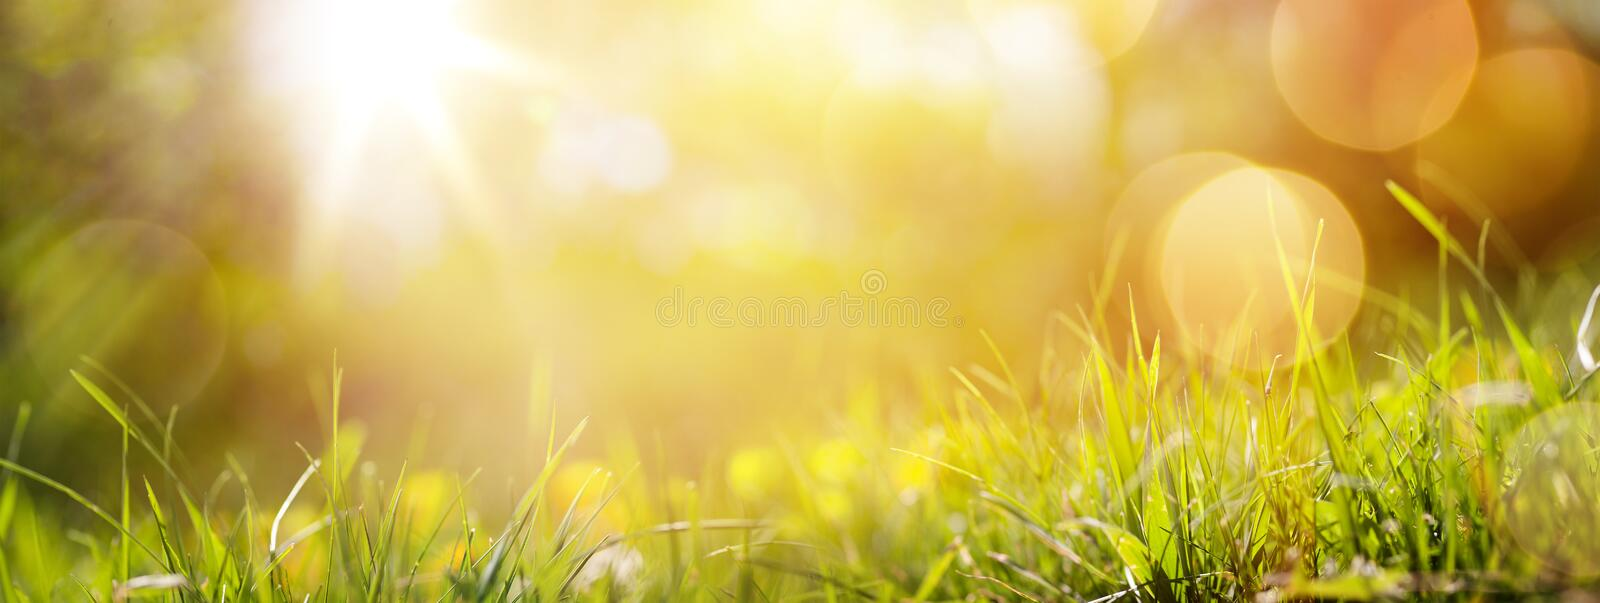 Art abstract spring background or summer background with fresh g royalty free stock photos